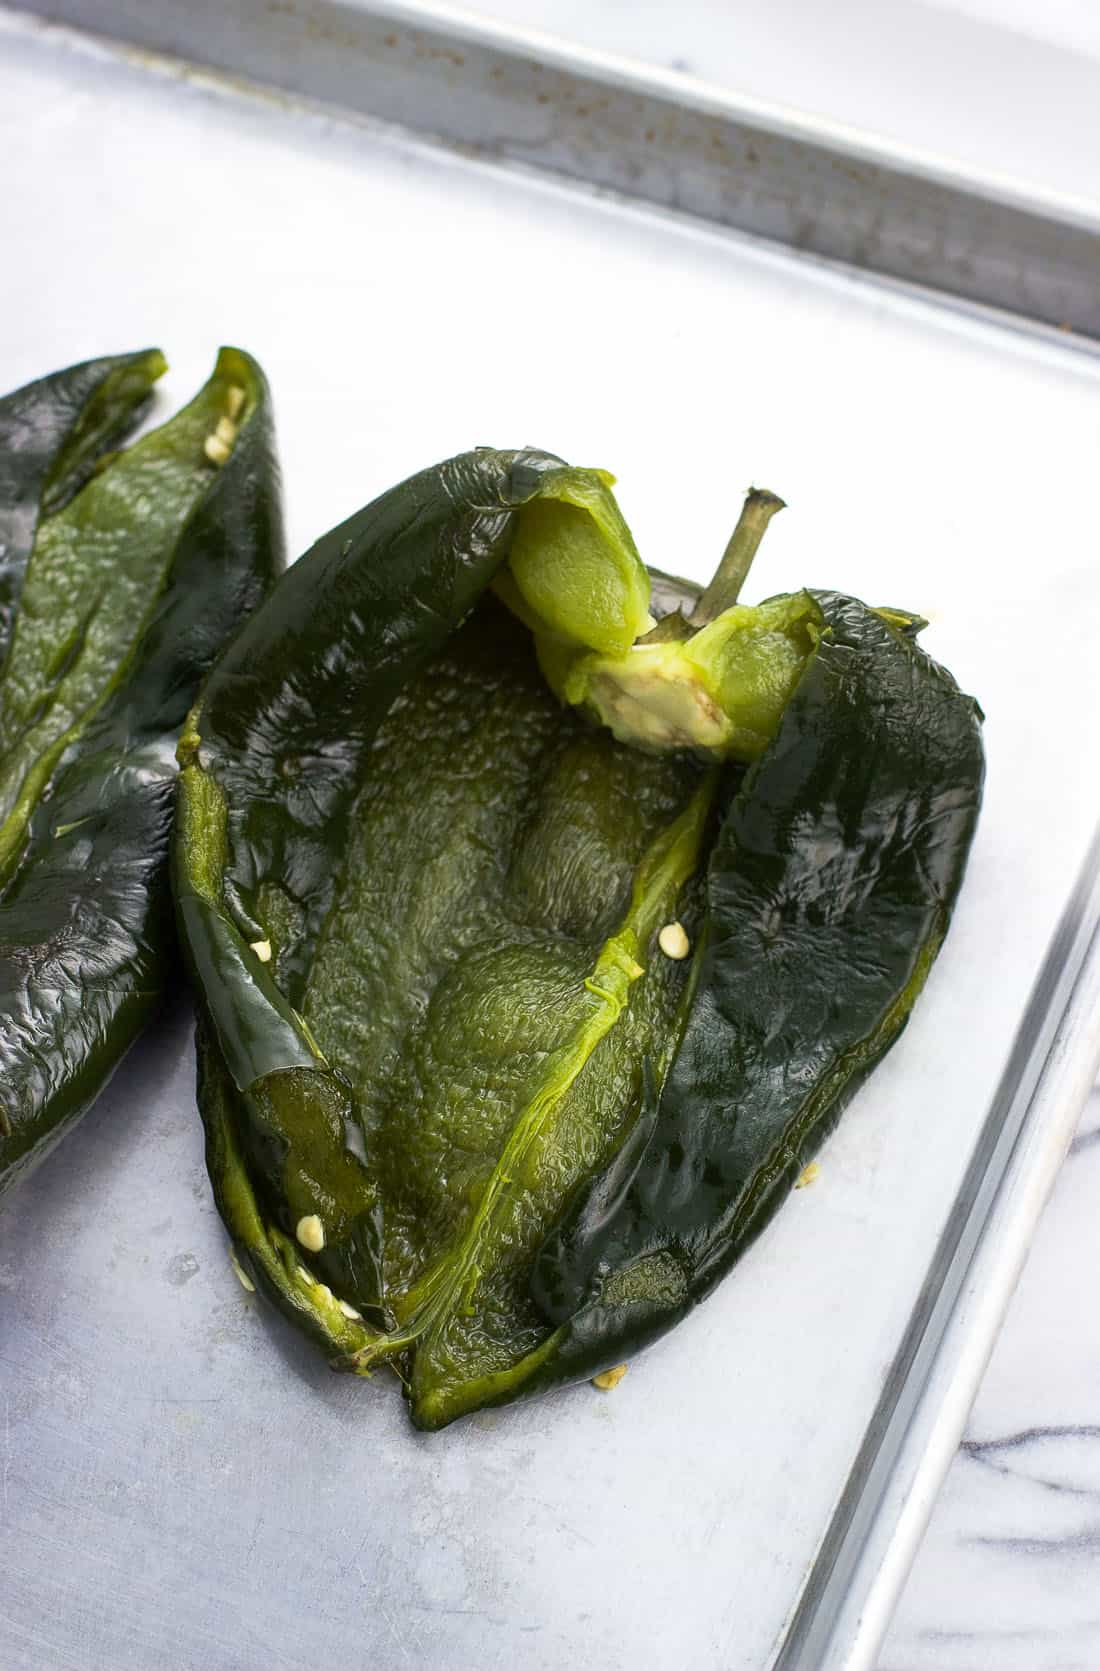 A roasted poblano pepper on a metal baking sheet split open